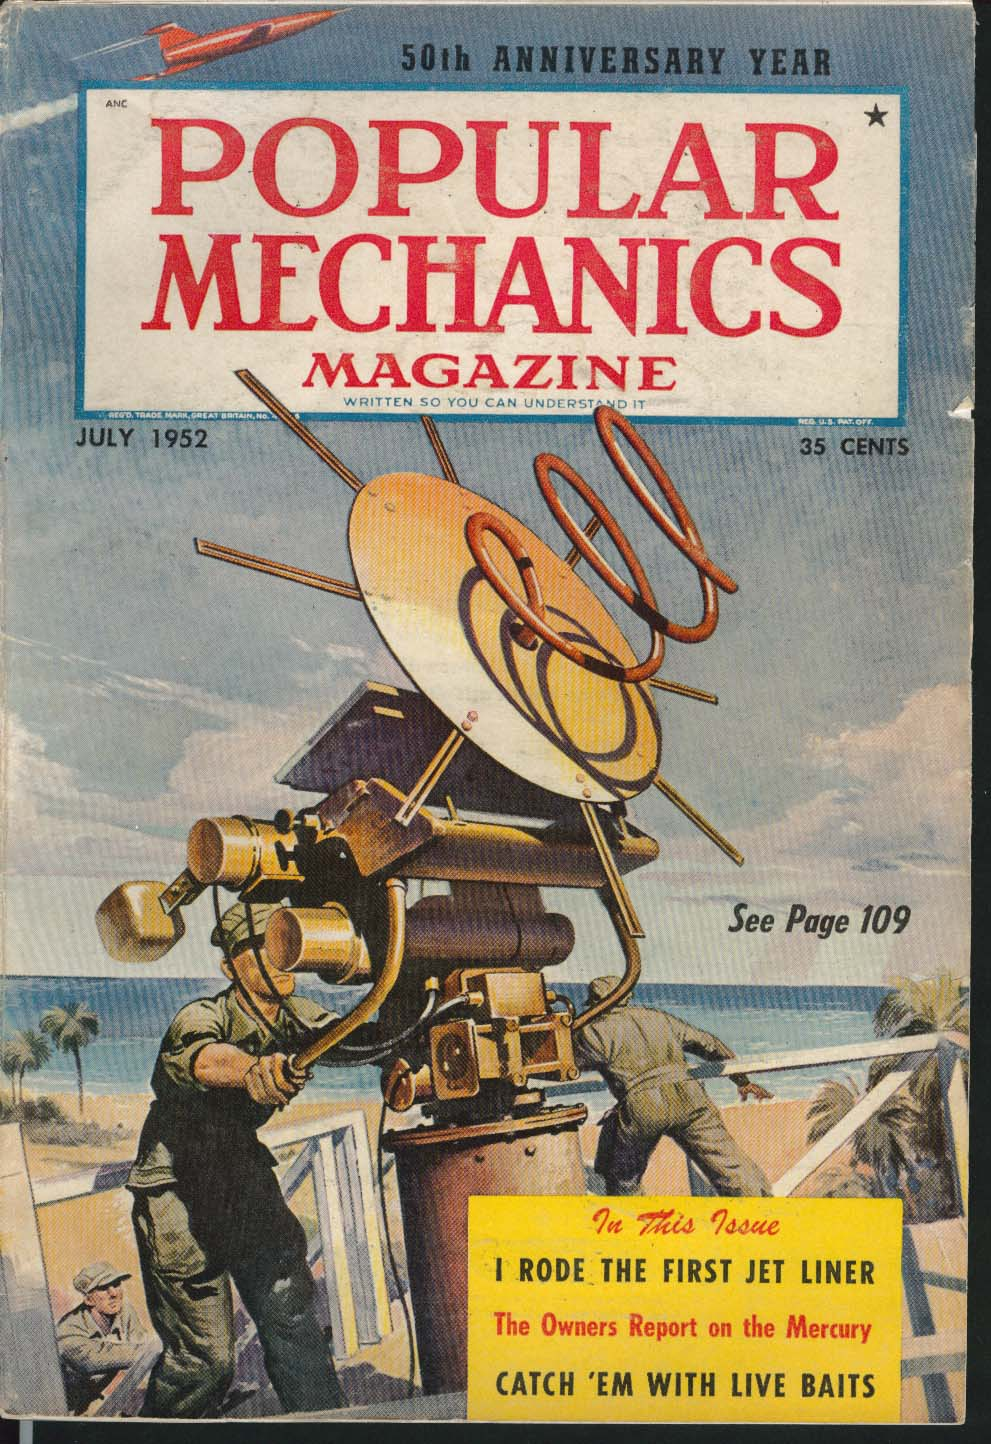 POPULAR MECHANICS Television Cameras Commercial Photography Mercury ++ 7 1952